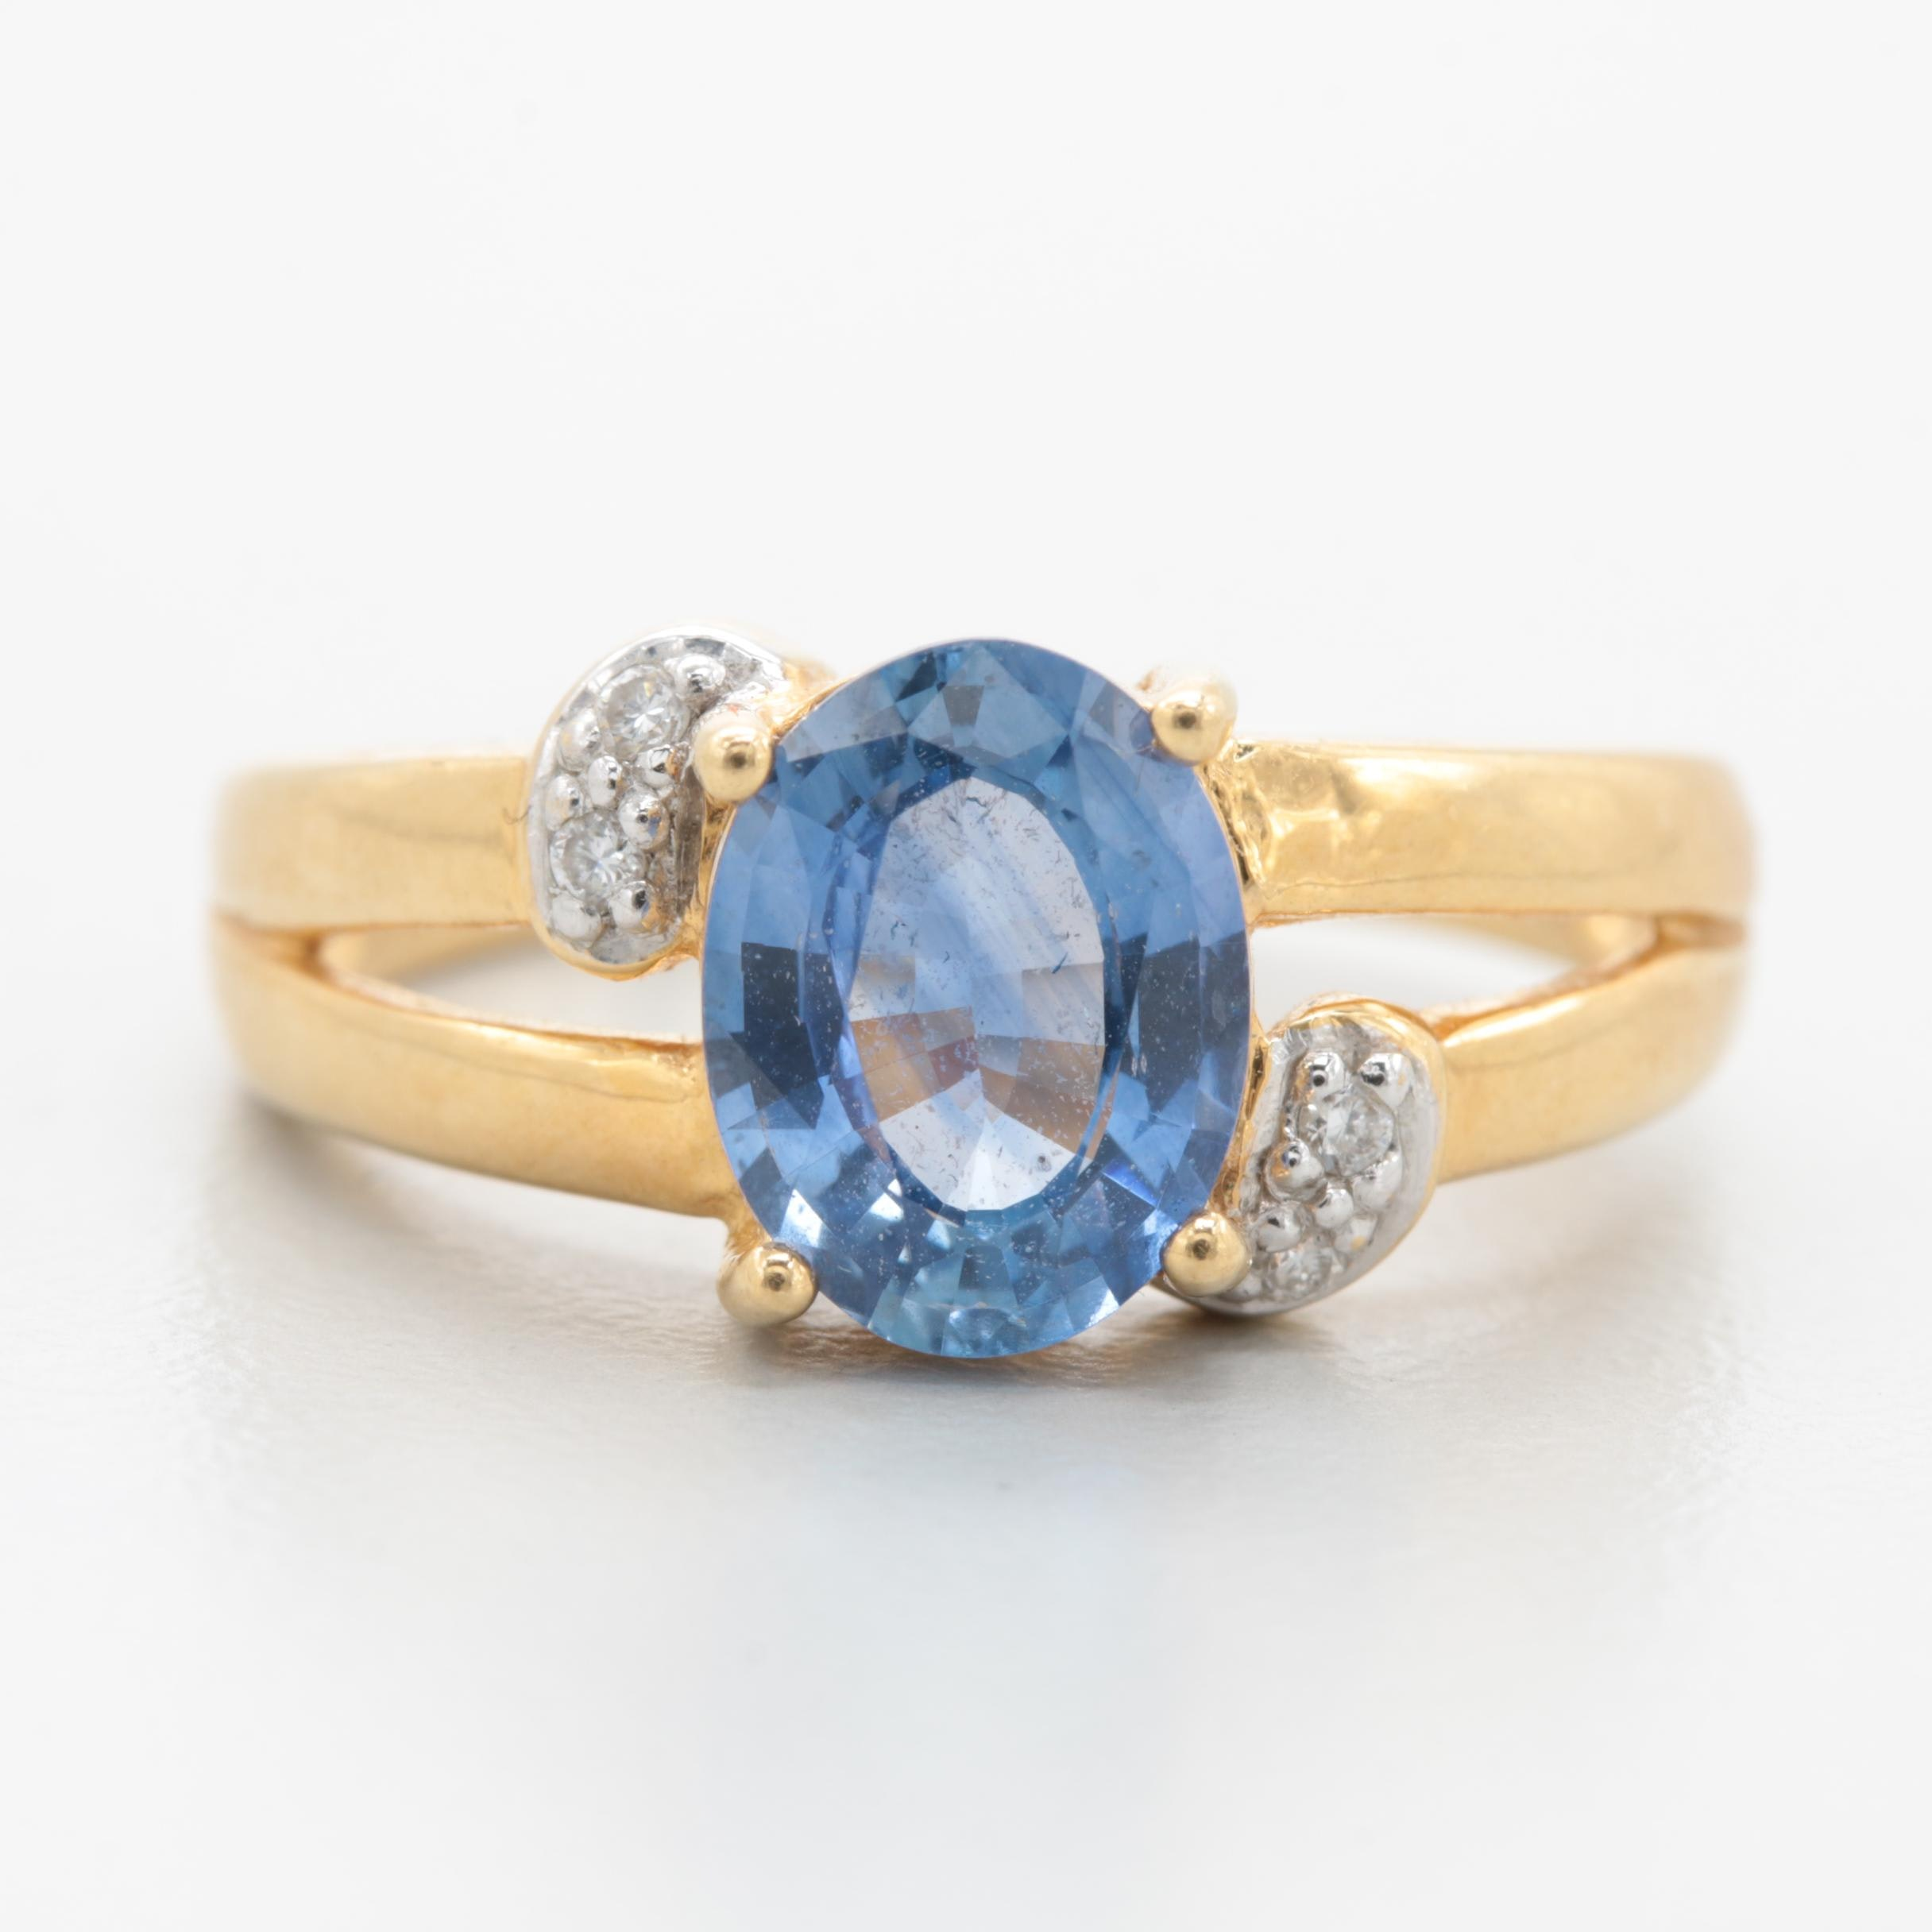 18K Yellow Gold 1.72 CT Blue Sapphire and Diamond Ring